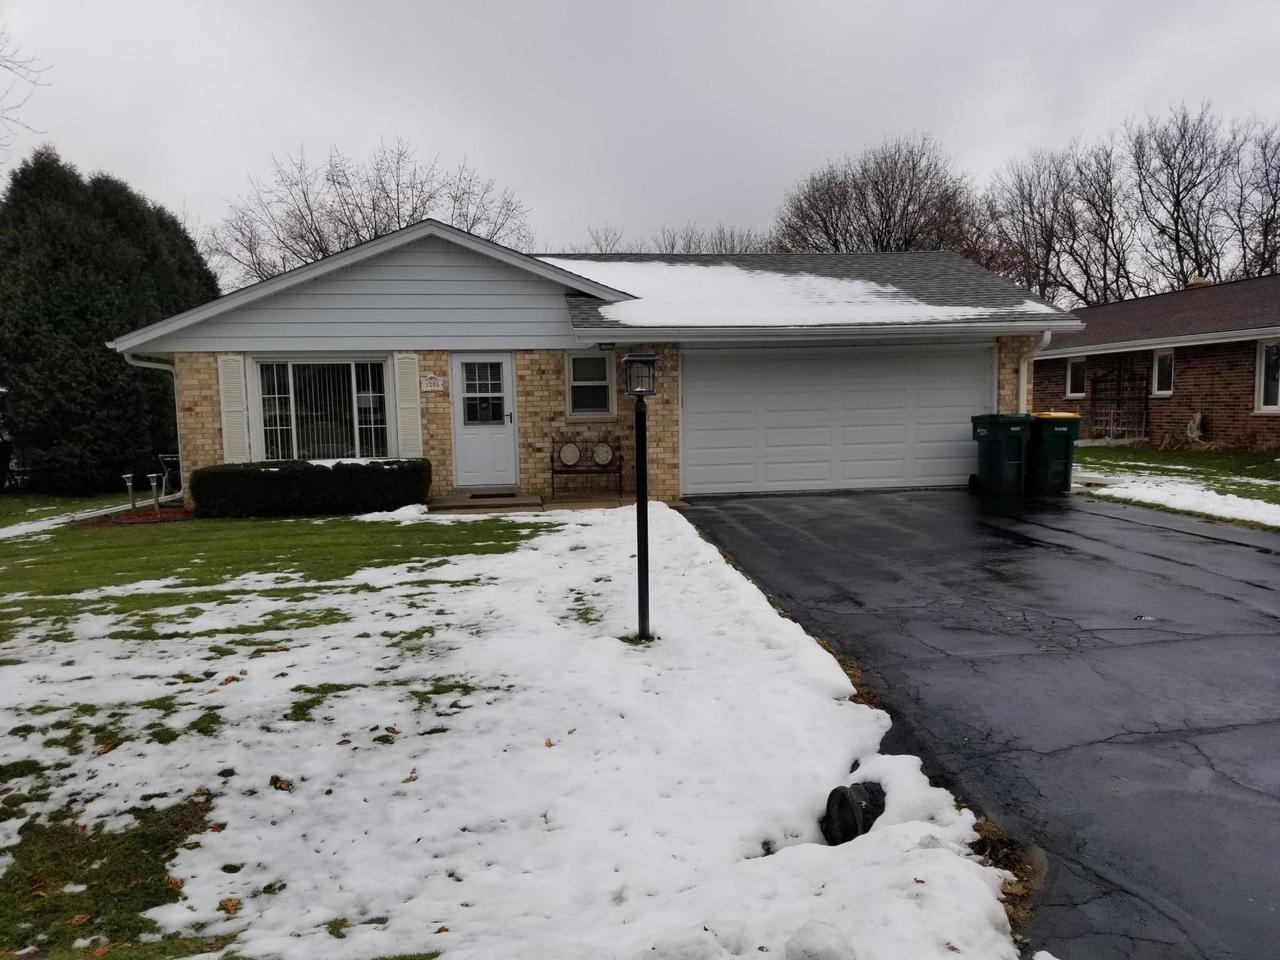 Nicely maintained brick ranch with large backyard and mature trees. Large concrete patio off the dining room. Lots of windows make this a bright and cheery home. The laundry room is in basement but there are hook-ups on the main level. Nice starter home and it's in the Slinger school district.